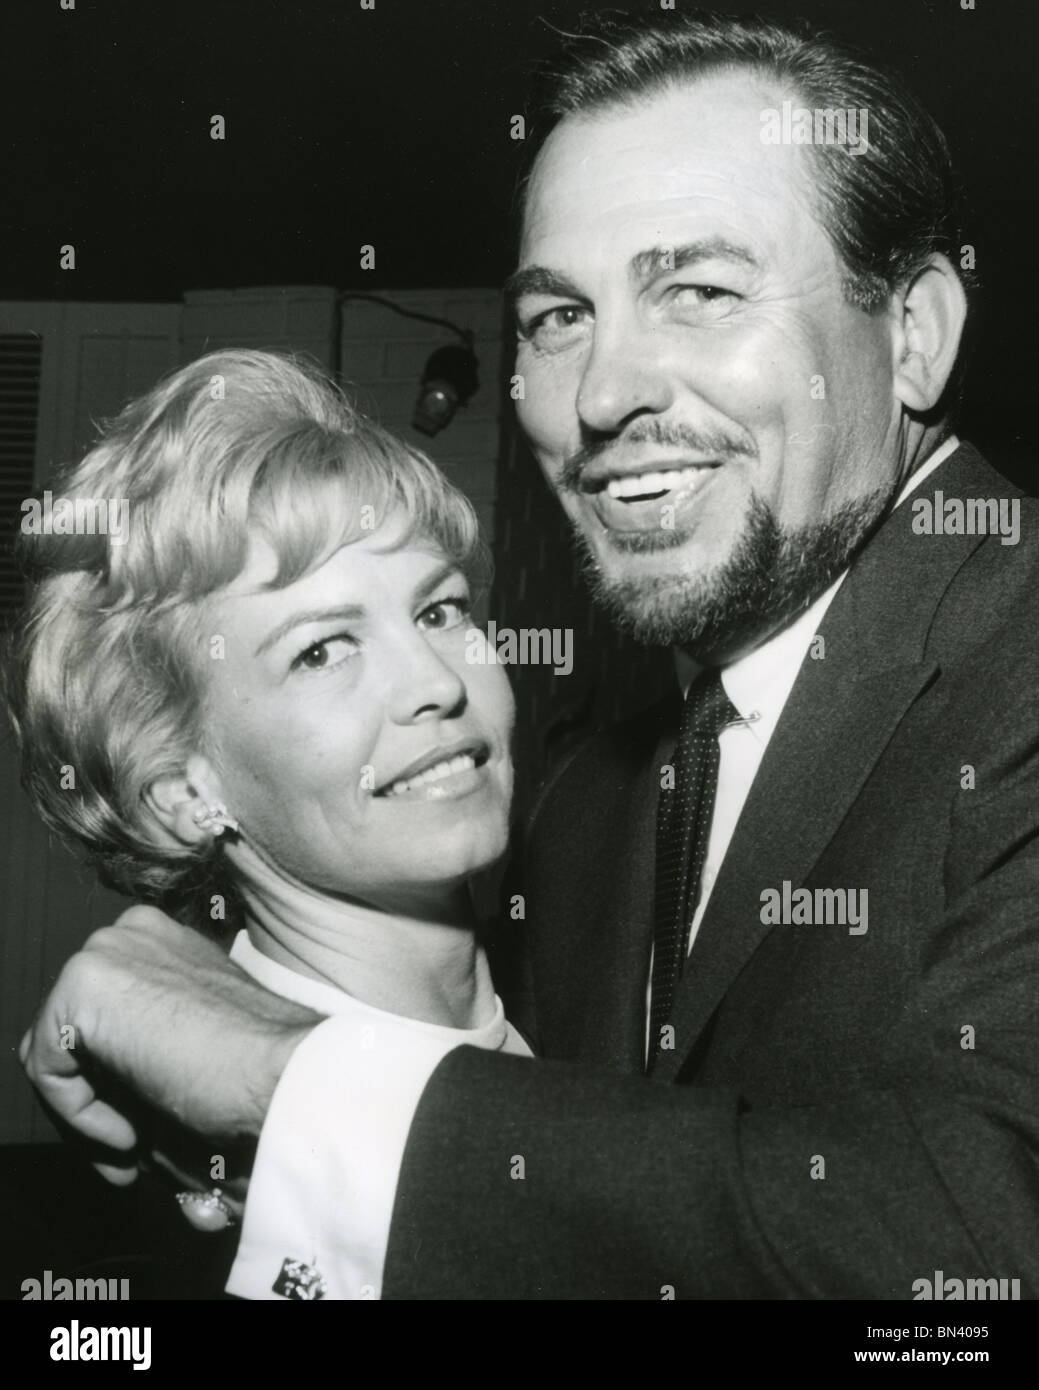 howard keel kiss me katehoward keel height, howard keel bio, howard keel songs, howard keel calamity jane, howard keel kiss me kate, howard keel imdb, howard keel on dallas, howard keel youtube, howard keel death, howard keel family, howard keel how tall, howard keel find a grave, howard keel pictures, howard keel daughter, howard keel the actor, howard keel war wagon, howard keel filmography, howard keel grinch, howard keel helen anderson, howard keel jane powell